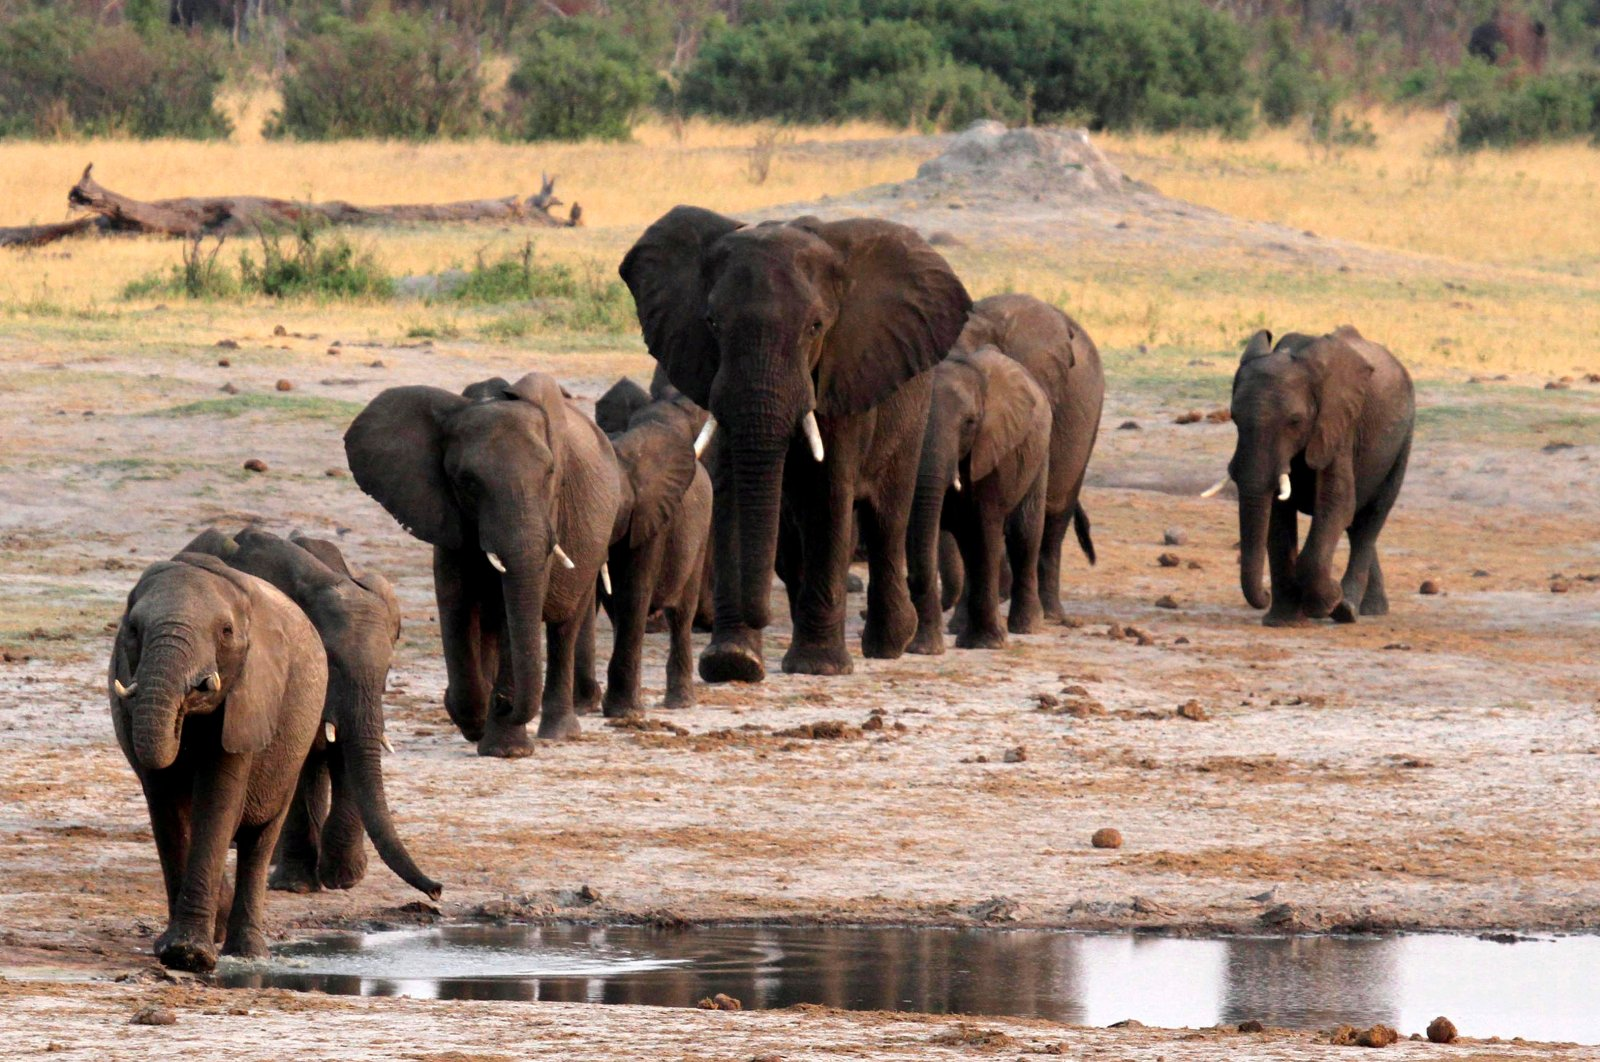 A herd of elephants walk past a watering hole in Hwange National Park, Zimbabwe, Oct. 14, 2014. (REUTERS Photo)